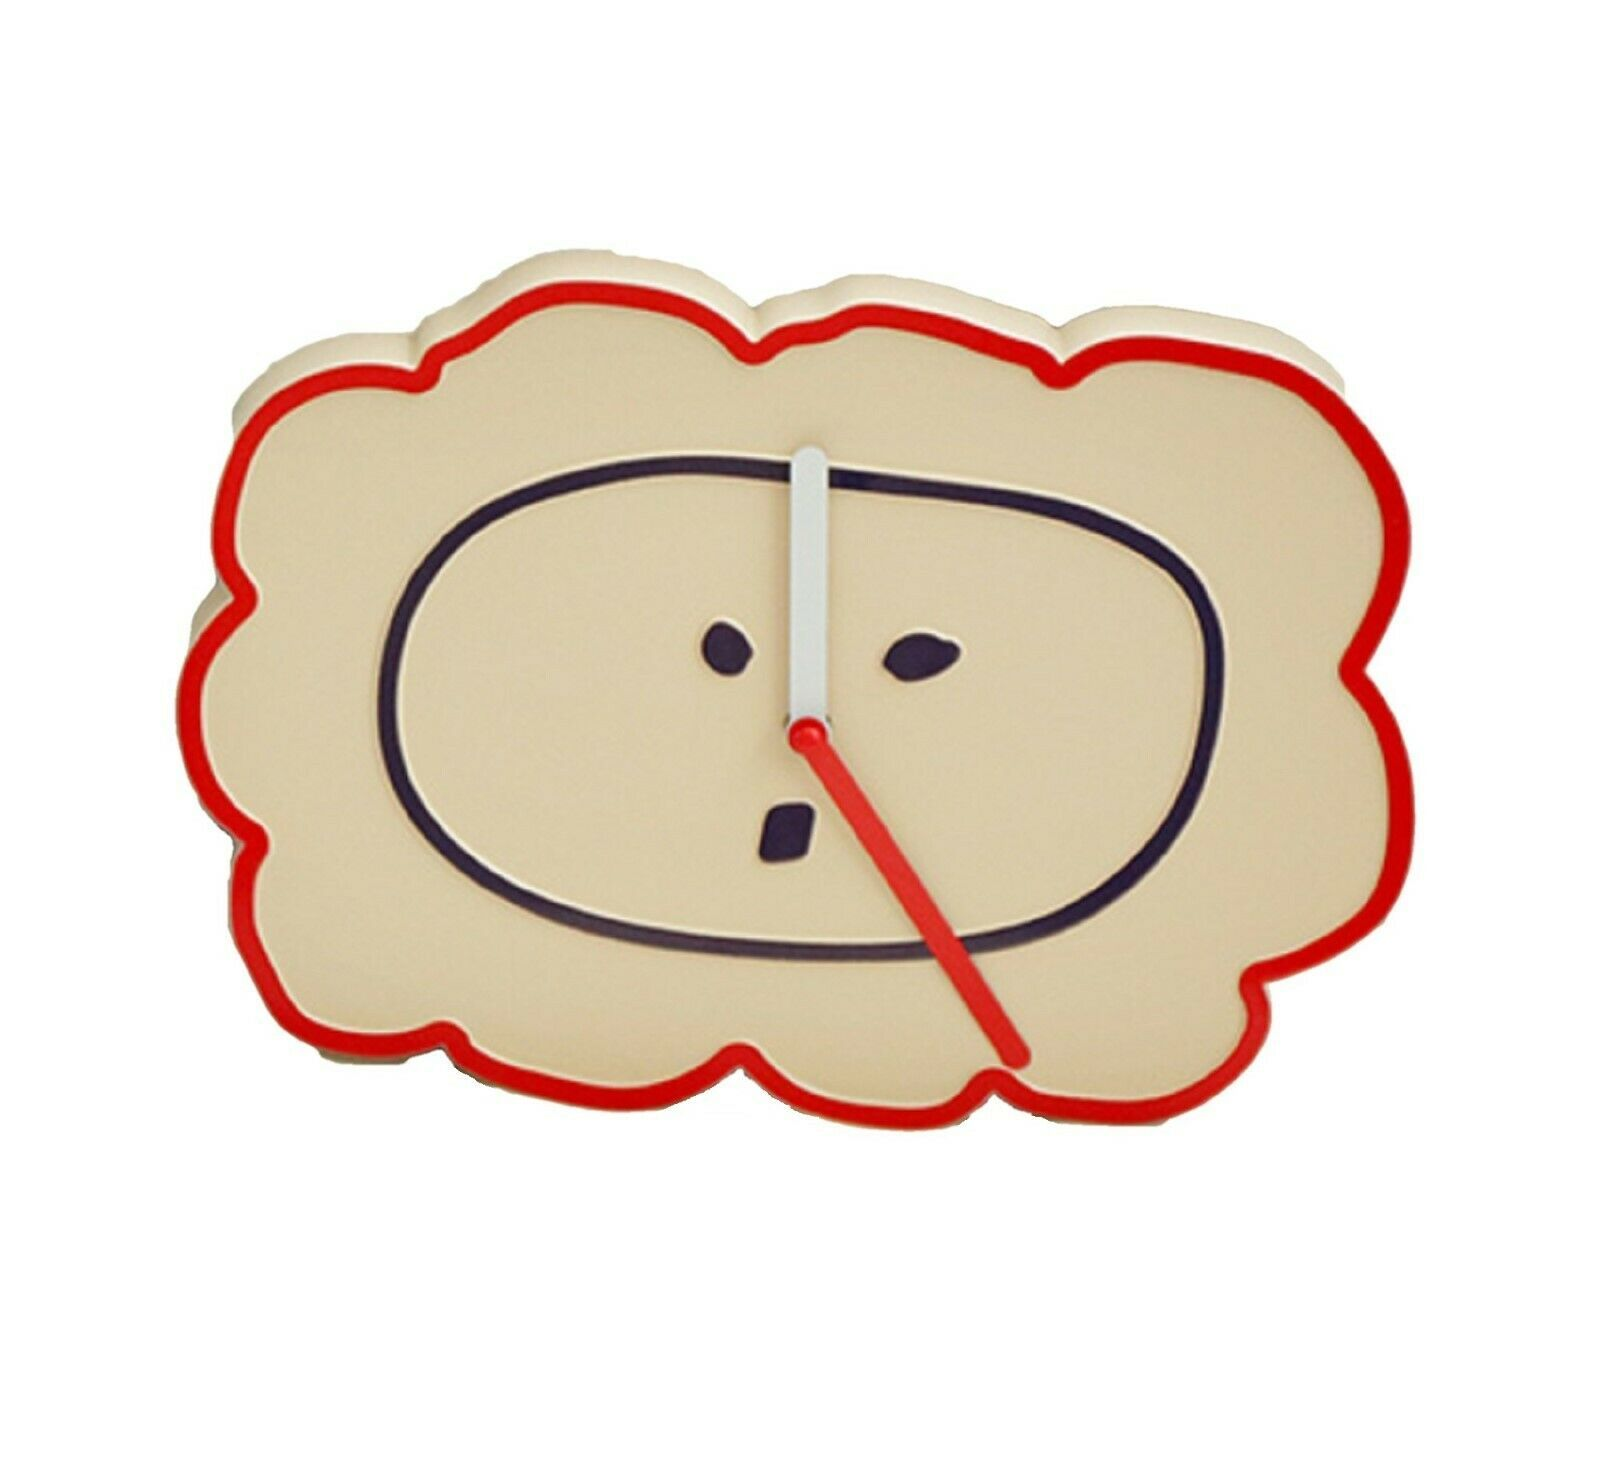 Brunch Brother Wall Clock Non-Ticking Silent Decorative Modern Clock (Lion)